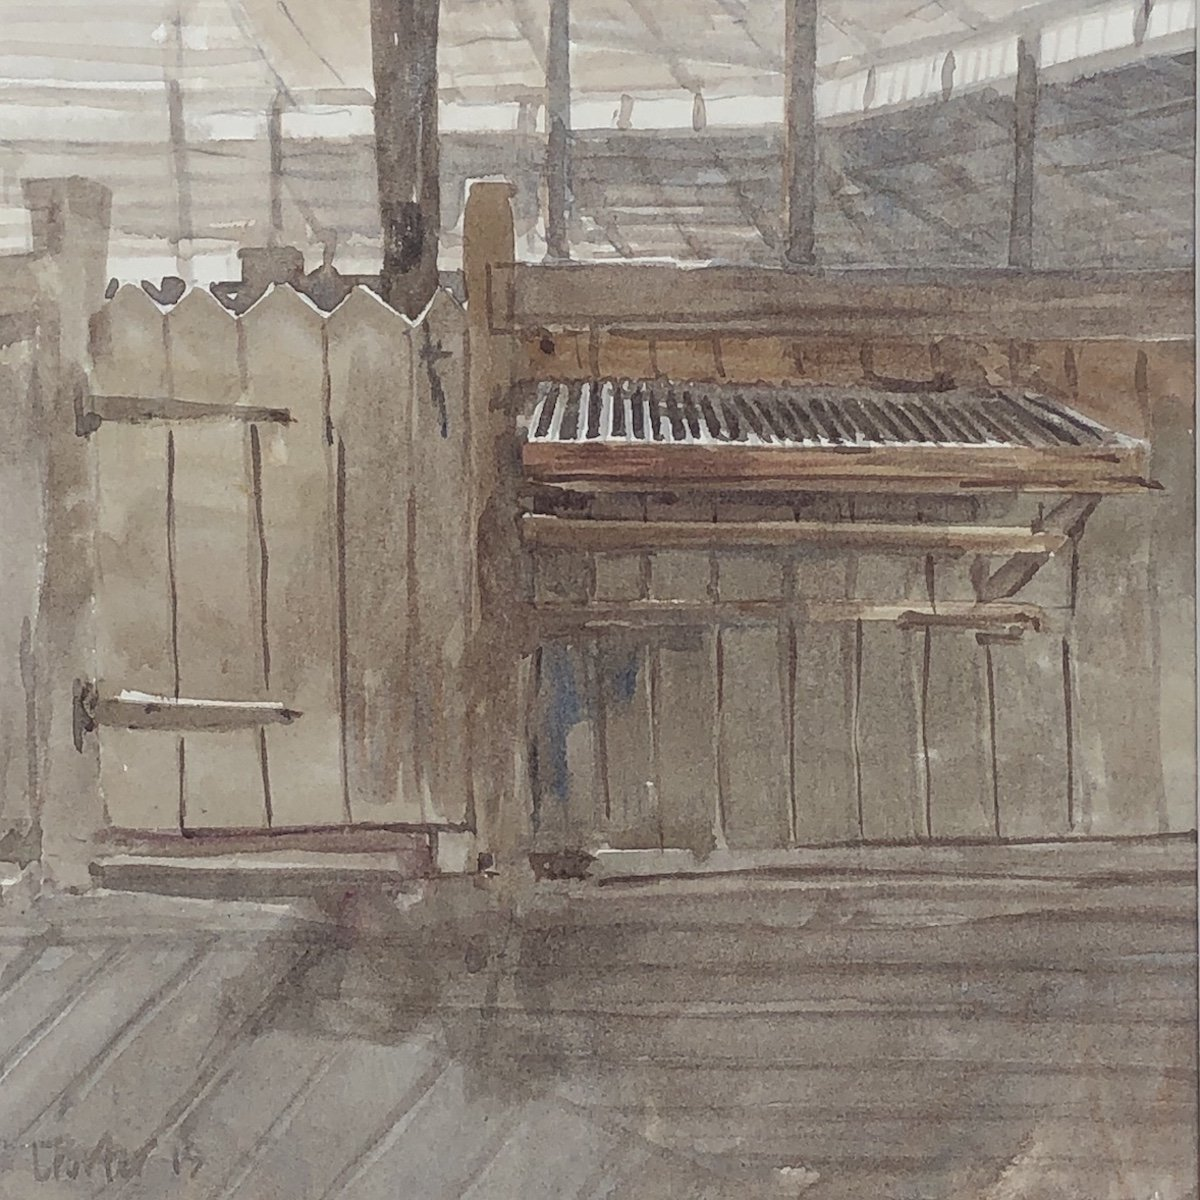 Watercolour painting by Christine Porter showing a small gate and a small wooltable. the gate has patterened tops the wooltable is connected to the low wall beside the gate. Behind it the clerestory of the pen area is visible.